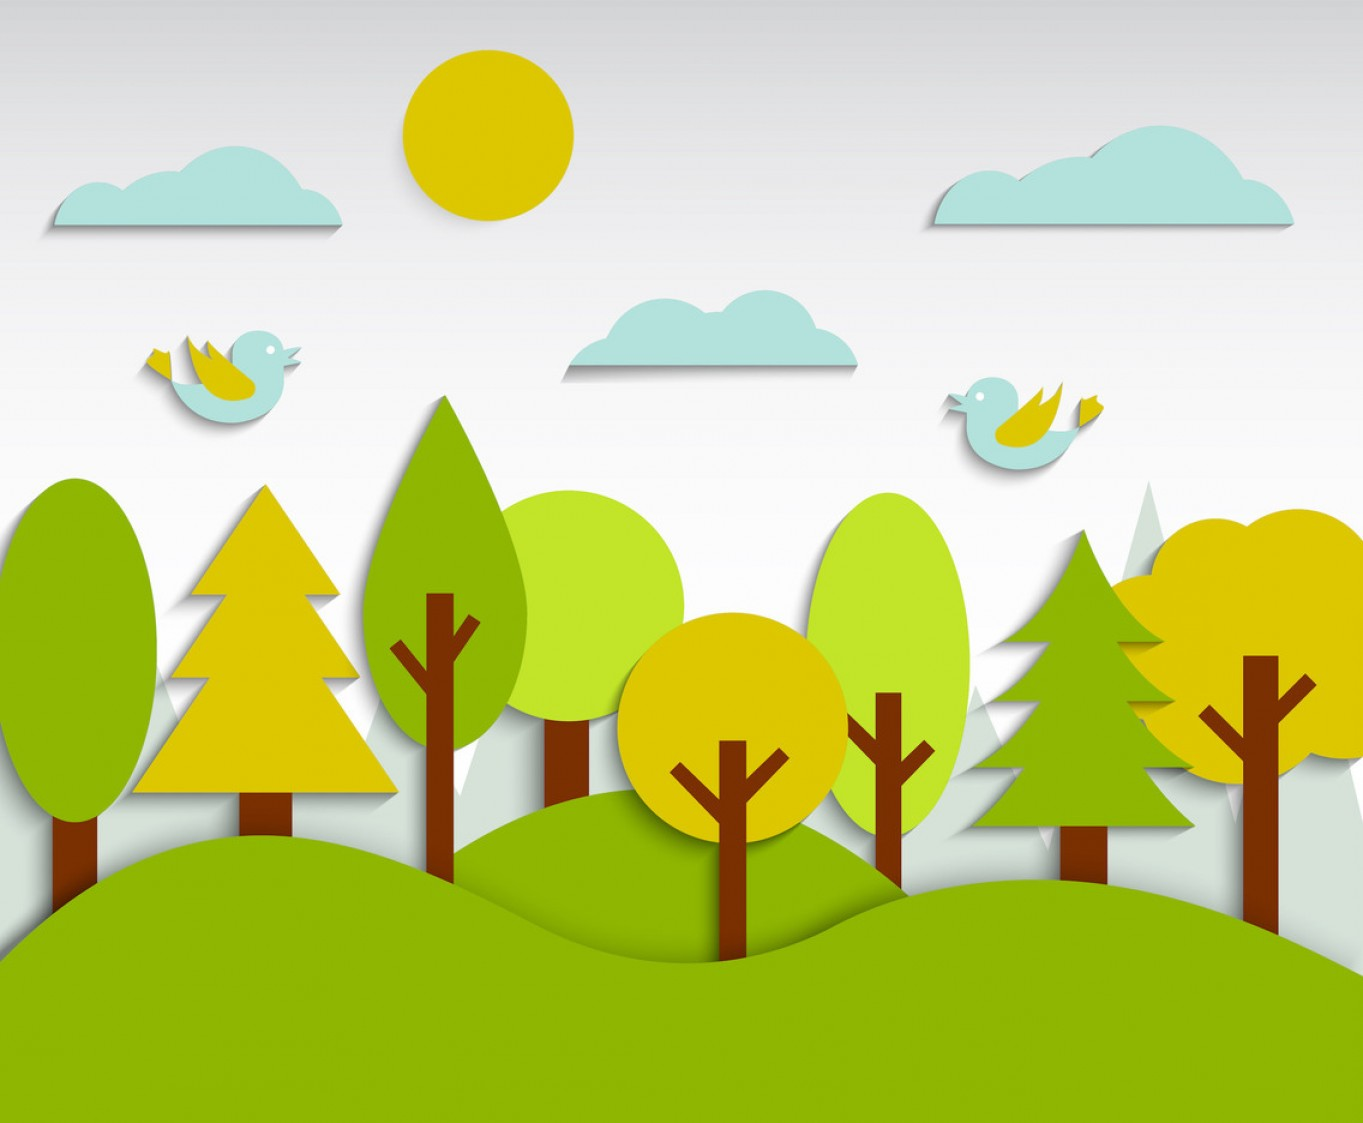 Flat Vector Art And Abstract Forest: Free Kids Forest Background Vector